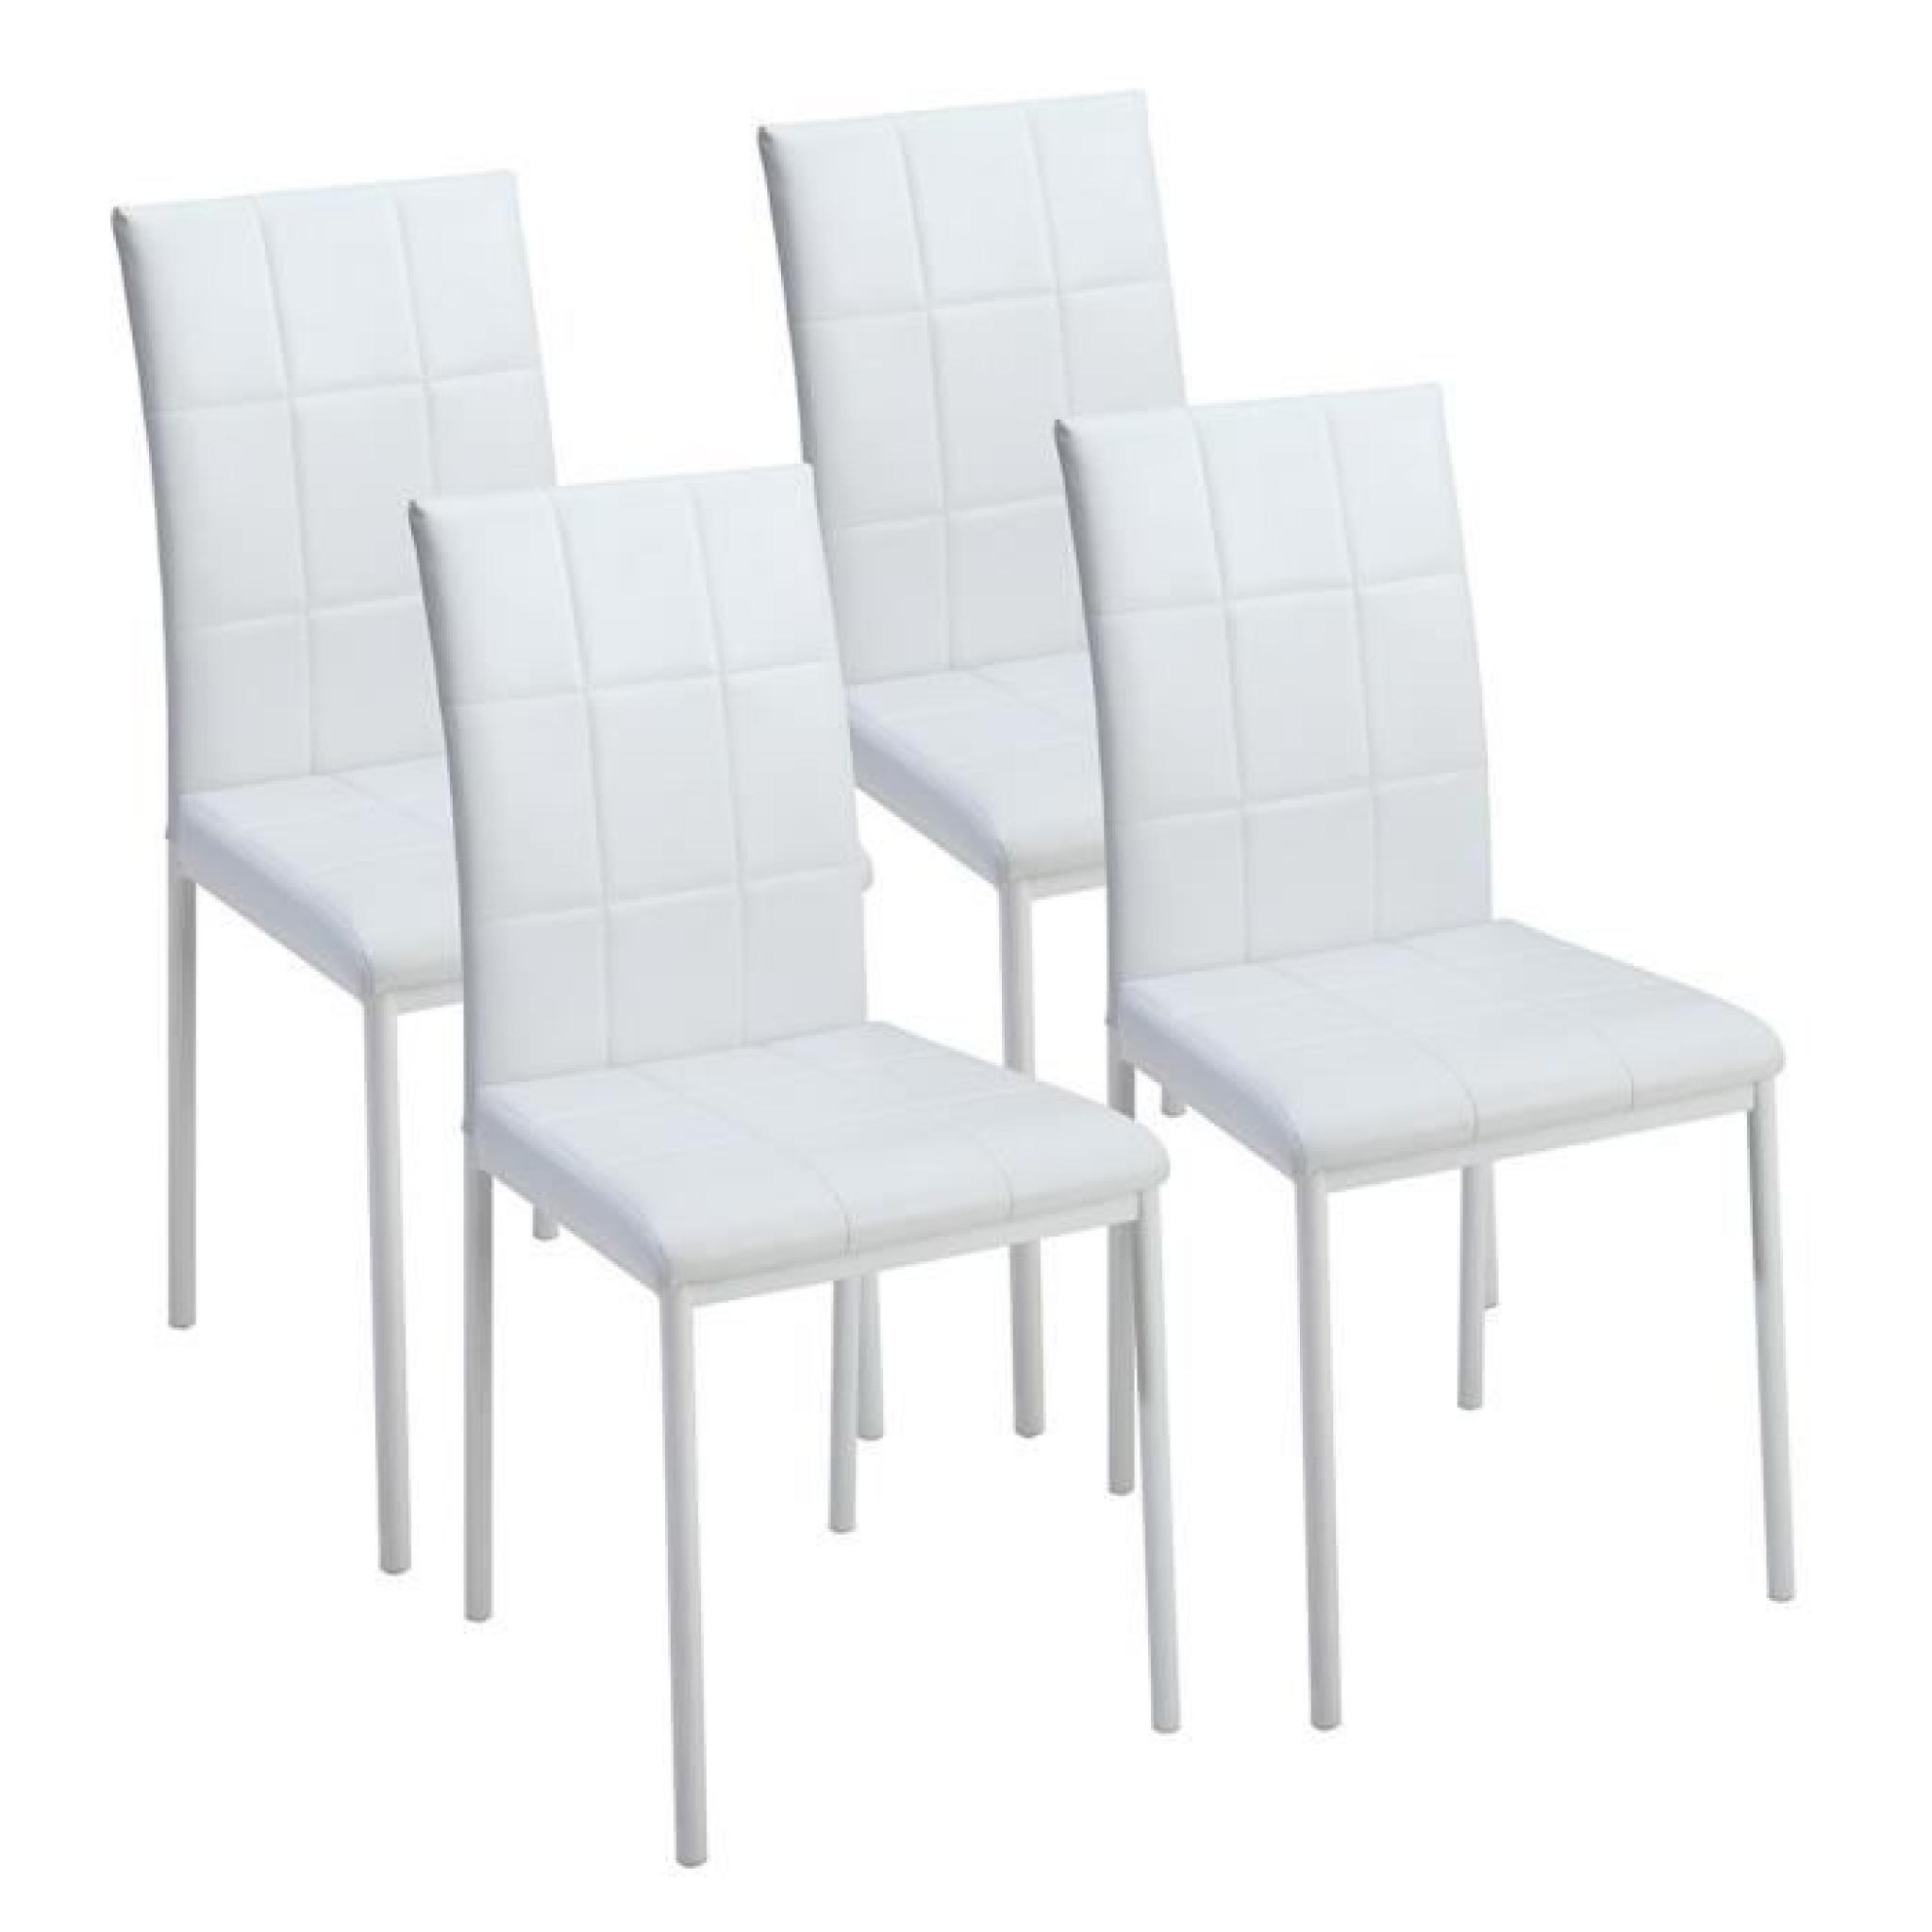 Chaises Blanches Design Salle Manger Chaises Blanches Salle à Manger Chaise Electra Laque Blanche